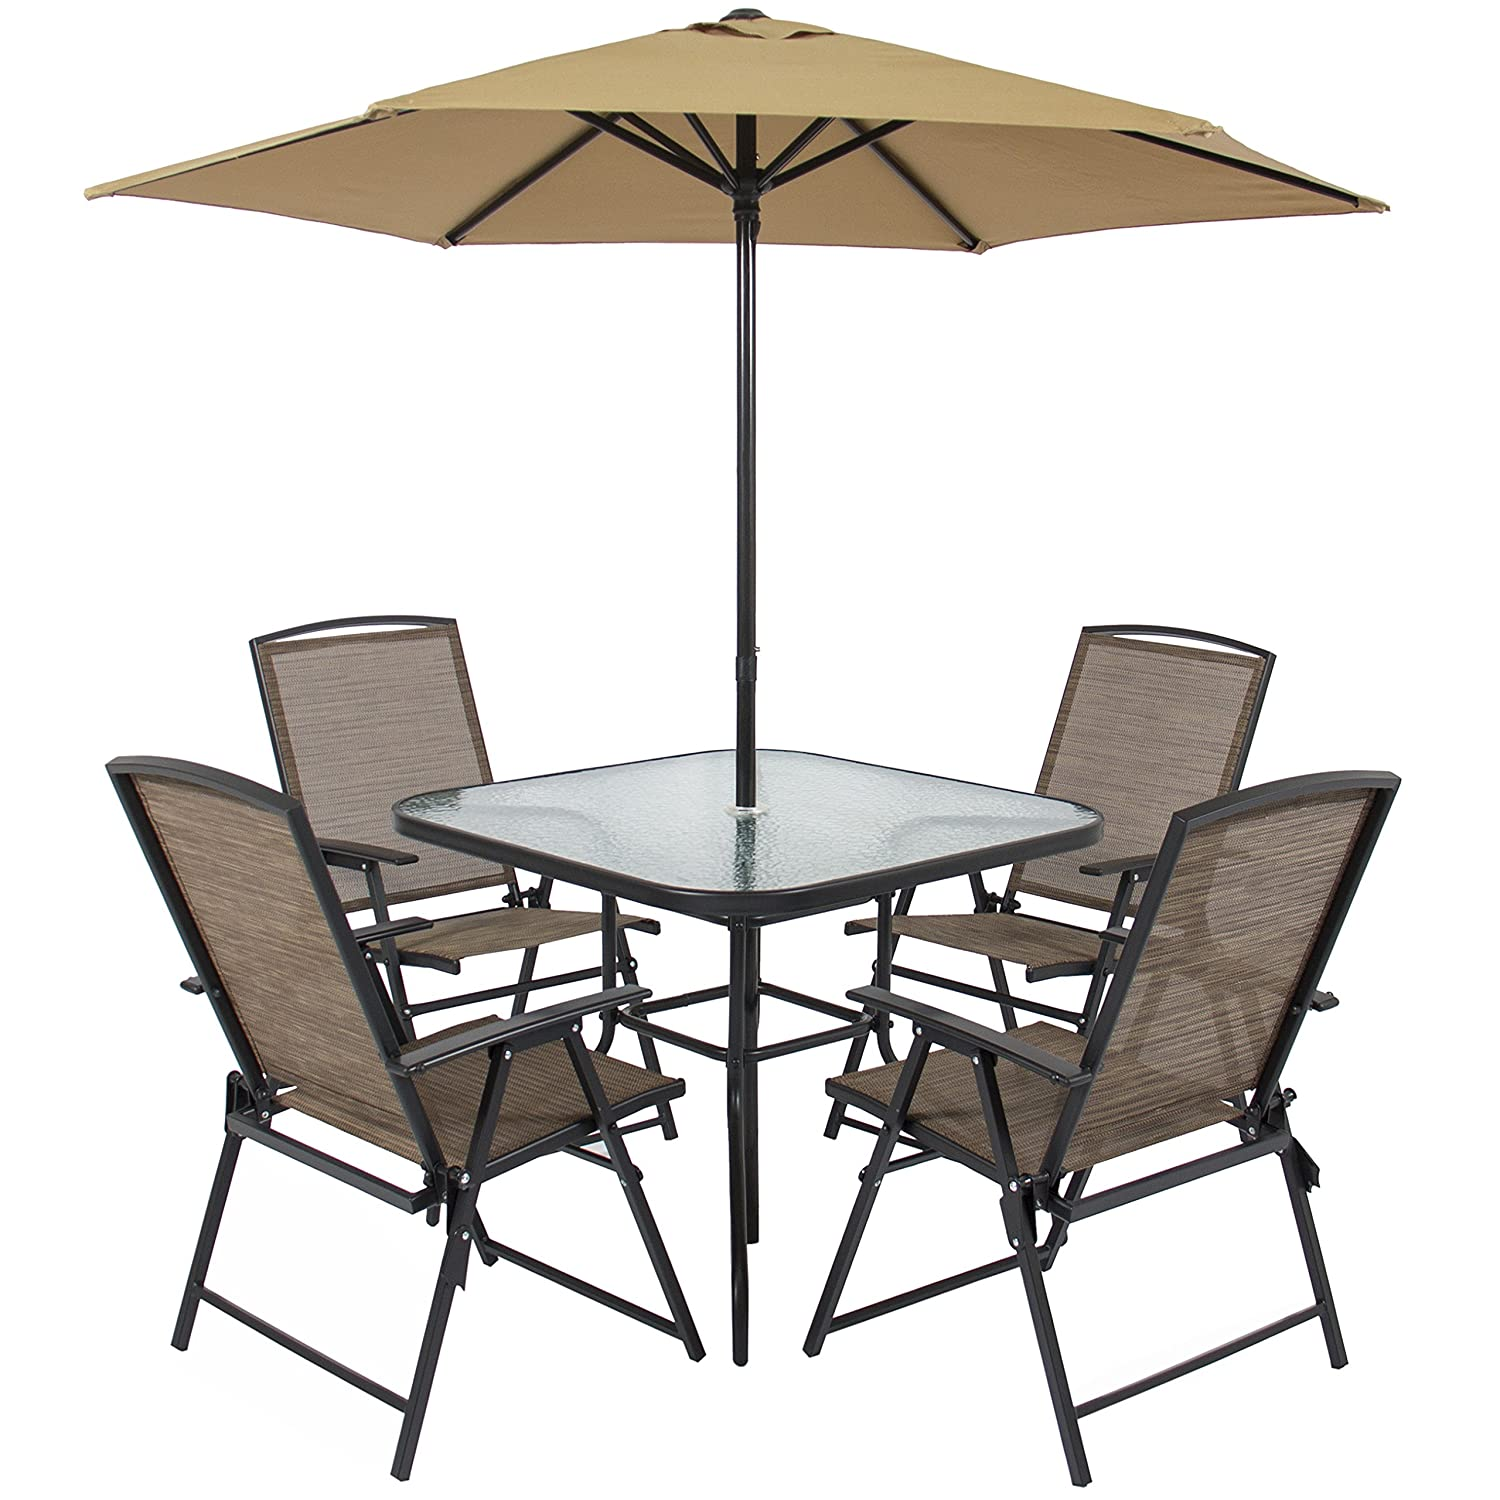 Amazon.com: Best Choice Products 6pc Outdoor Folding Patio Dining Set W/  Table, 4 Chairs, Umbrella And Built In Base: Garden U0026 Outdoor